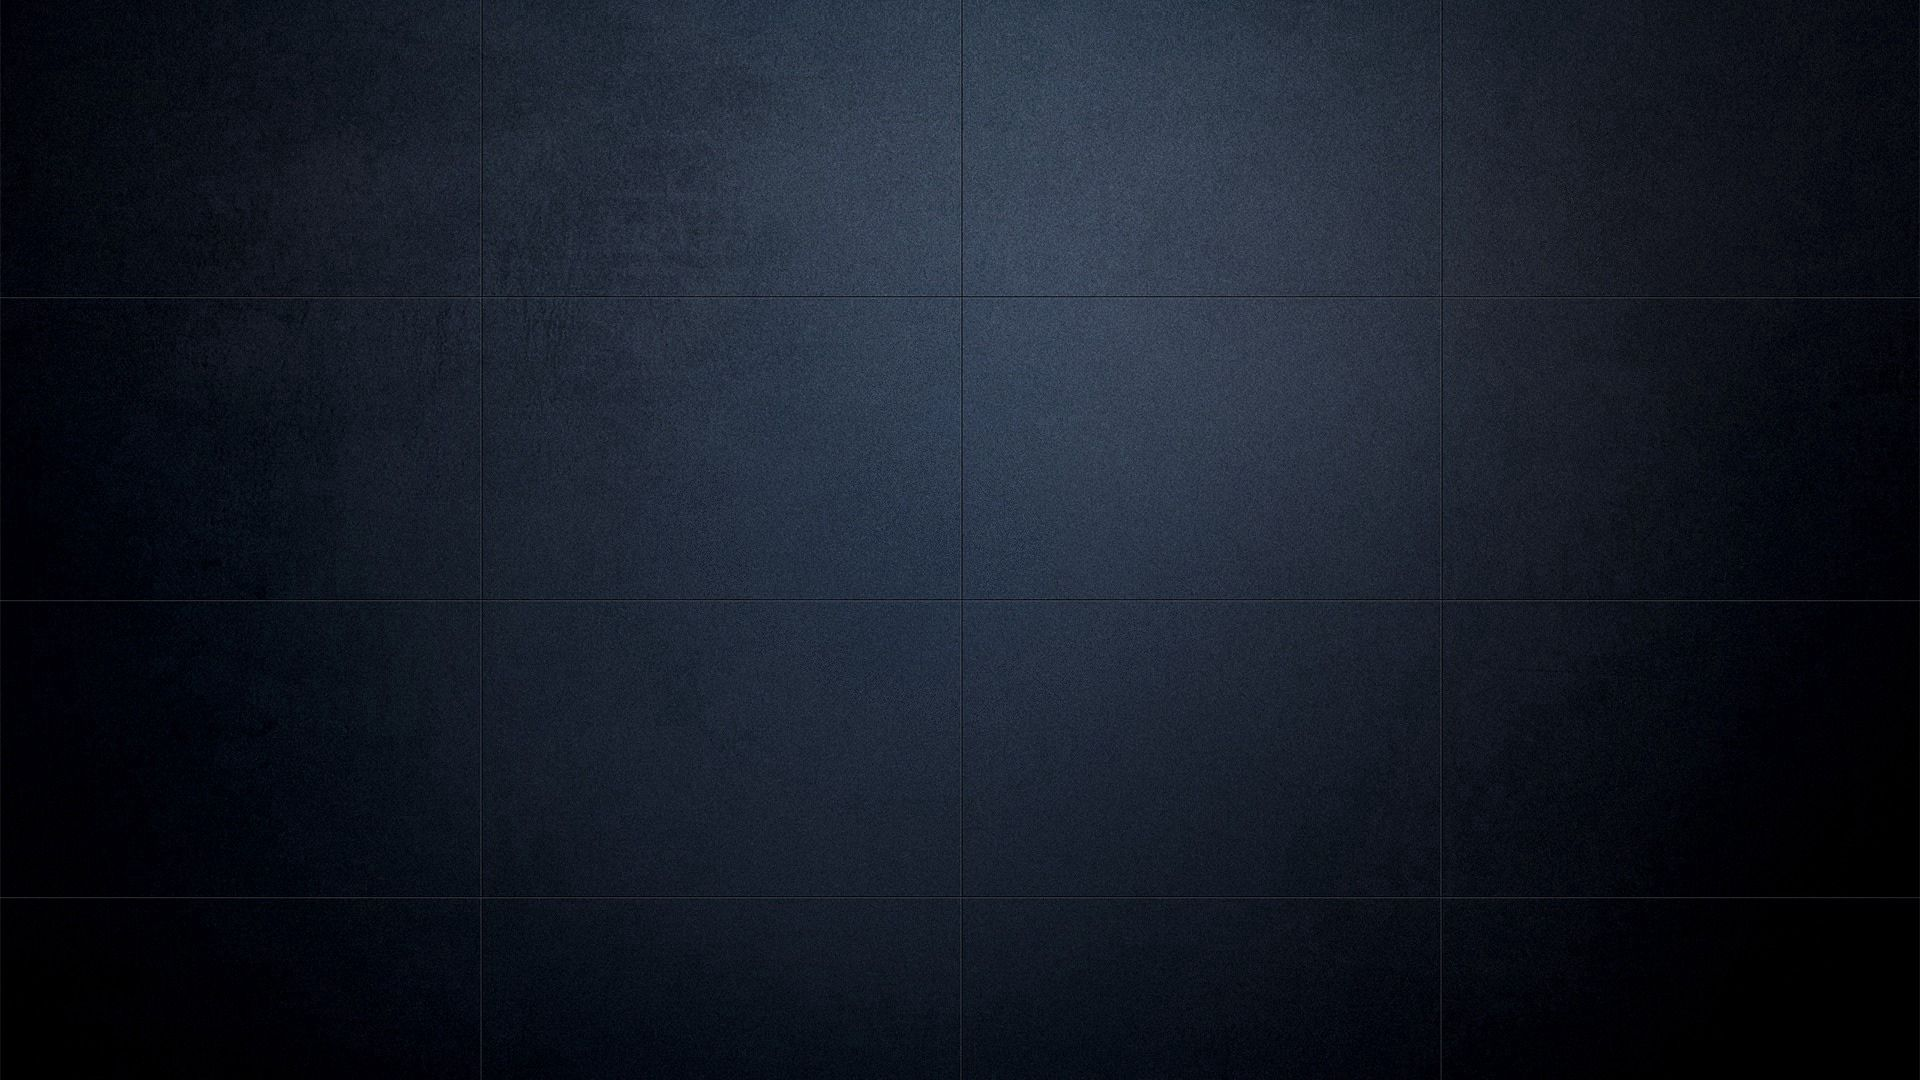 78099 download wallpaper Textures, Background, Dark, Texture, Wall, Stripes, Streaks screensavers and pictures for free